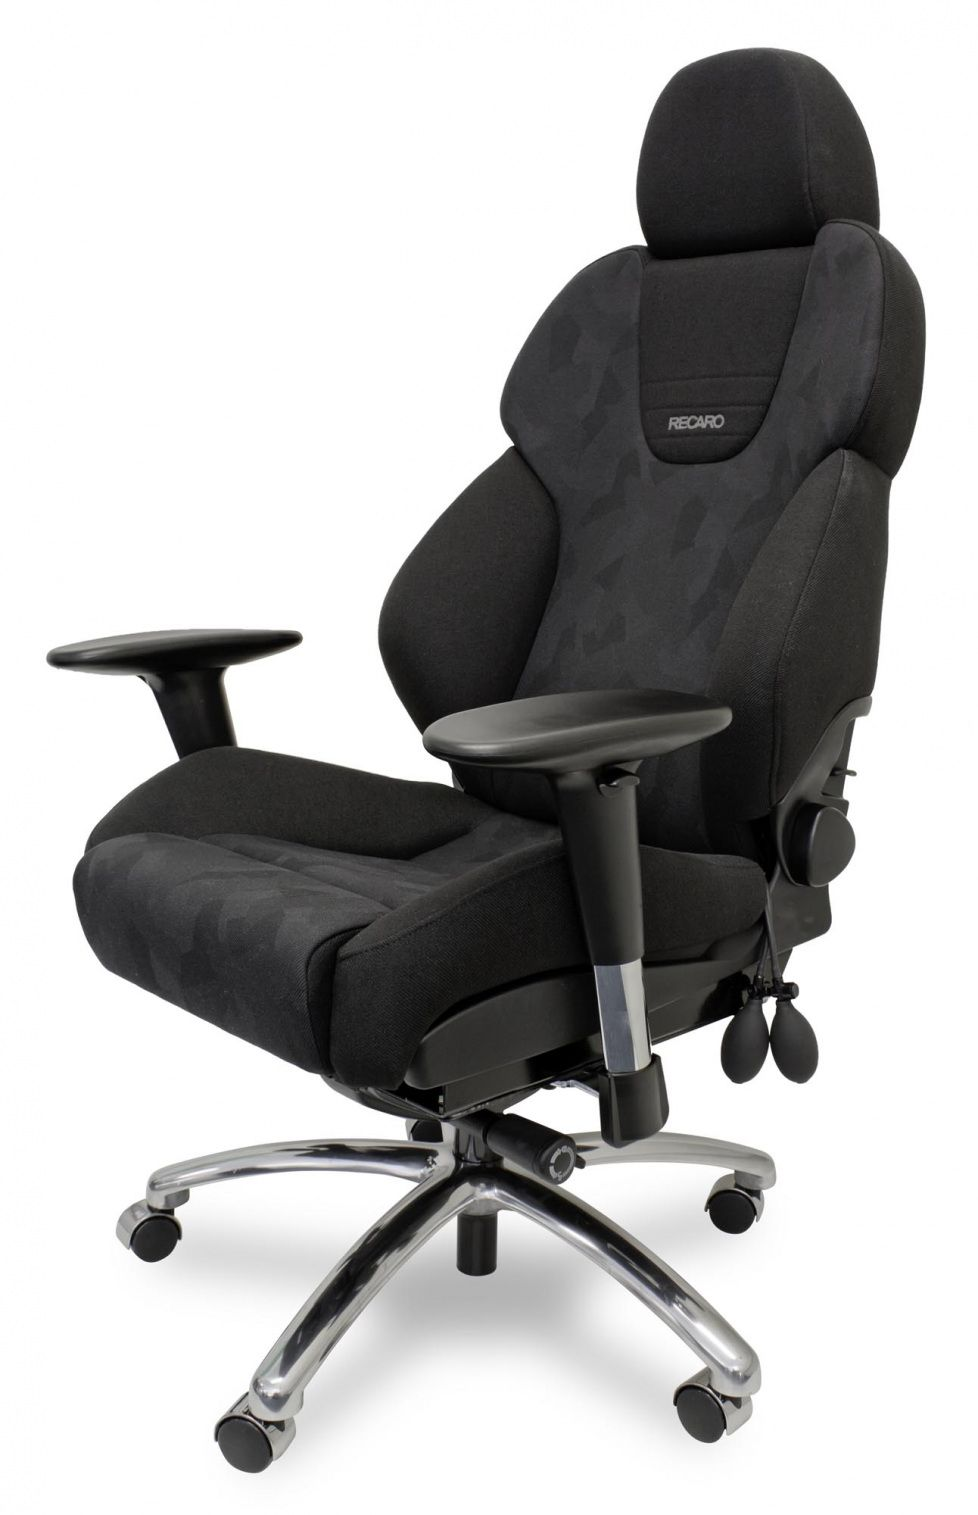 Stationary Office Chair Home Office Desk Furniture Check More At Http Www Drjamesghoodblog Com Stationary Office Chair